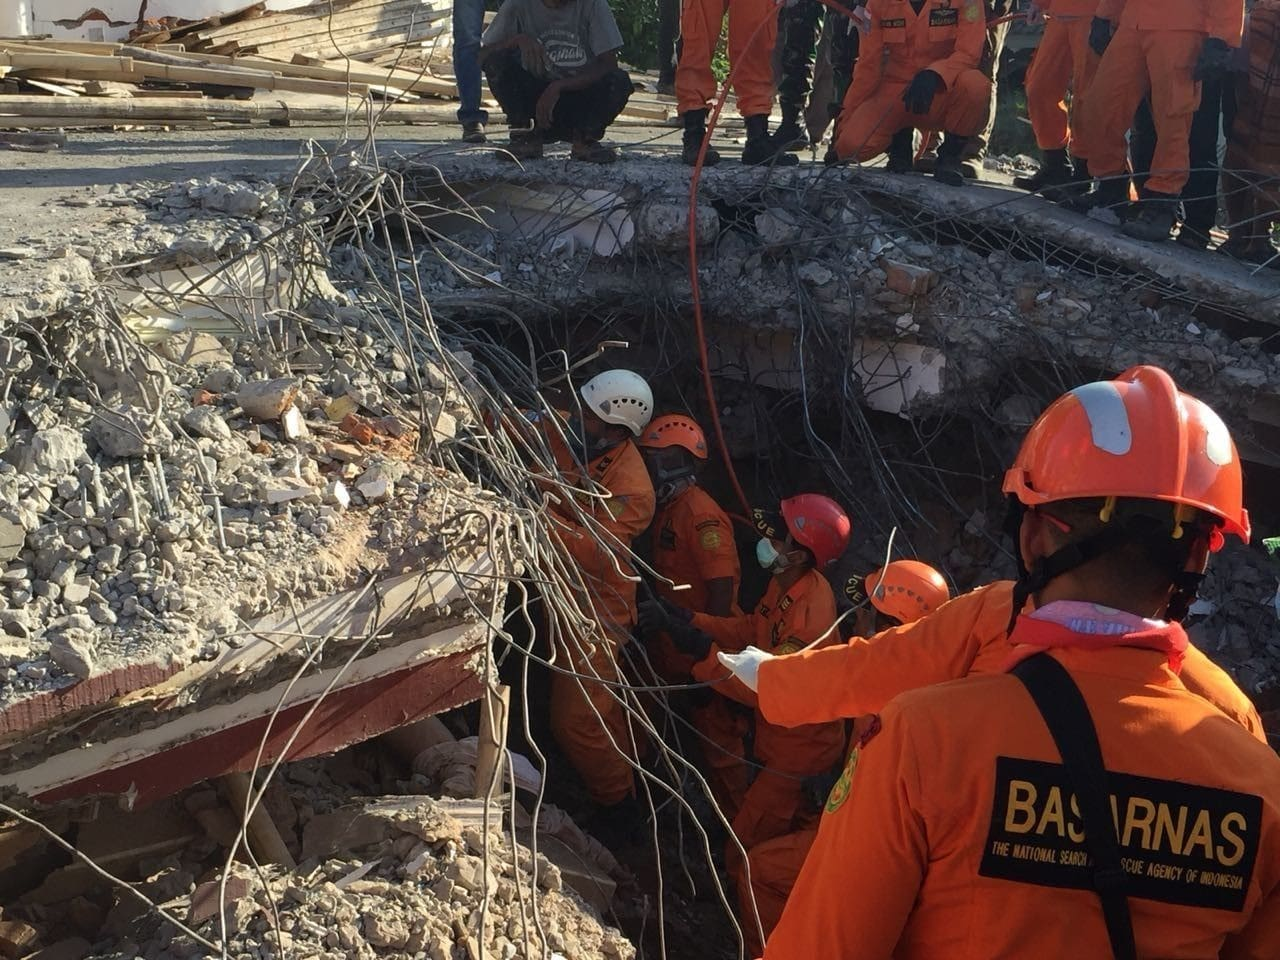 Rescuers try to free people trapped in collapsed mosque – Lombok | The Thaiger